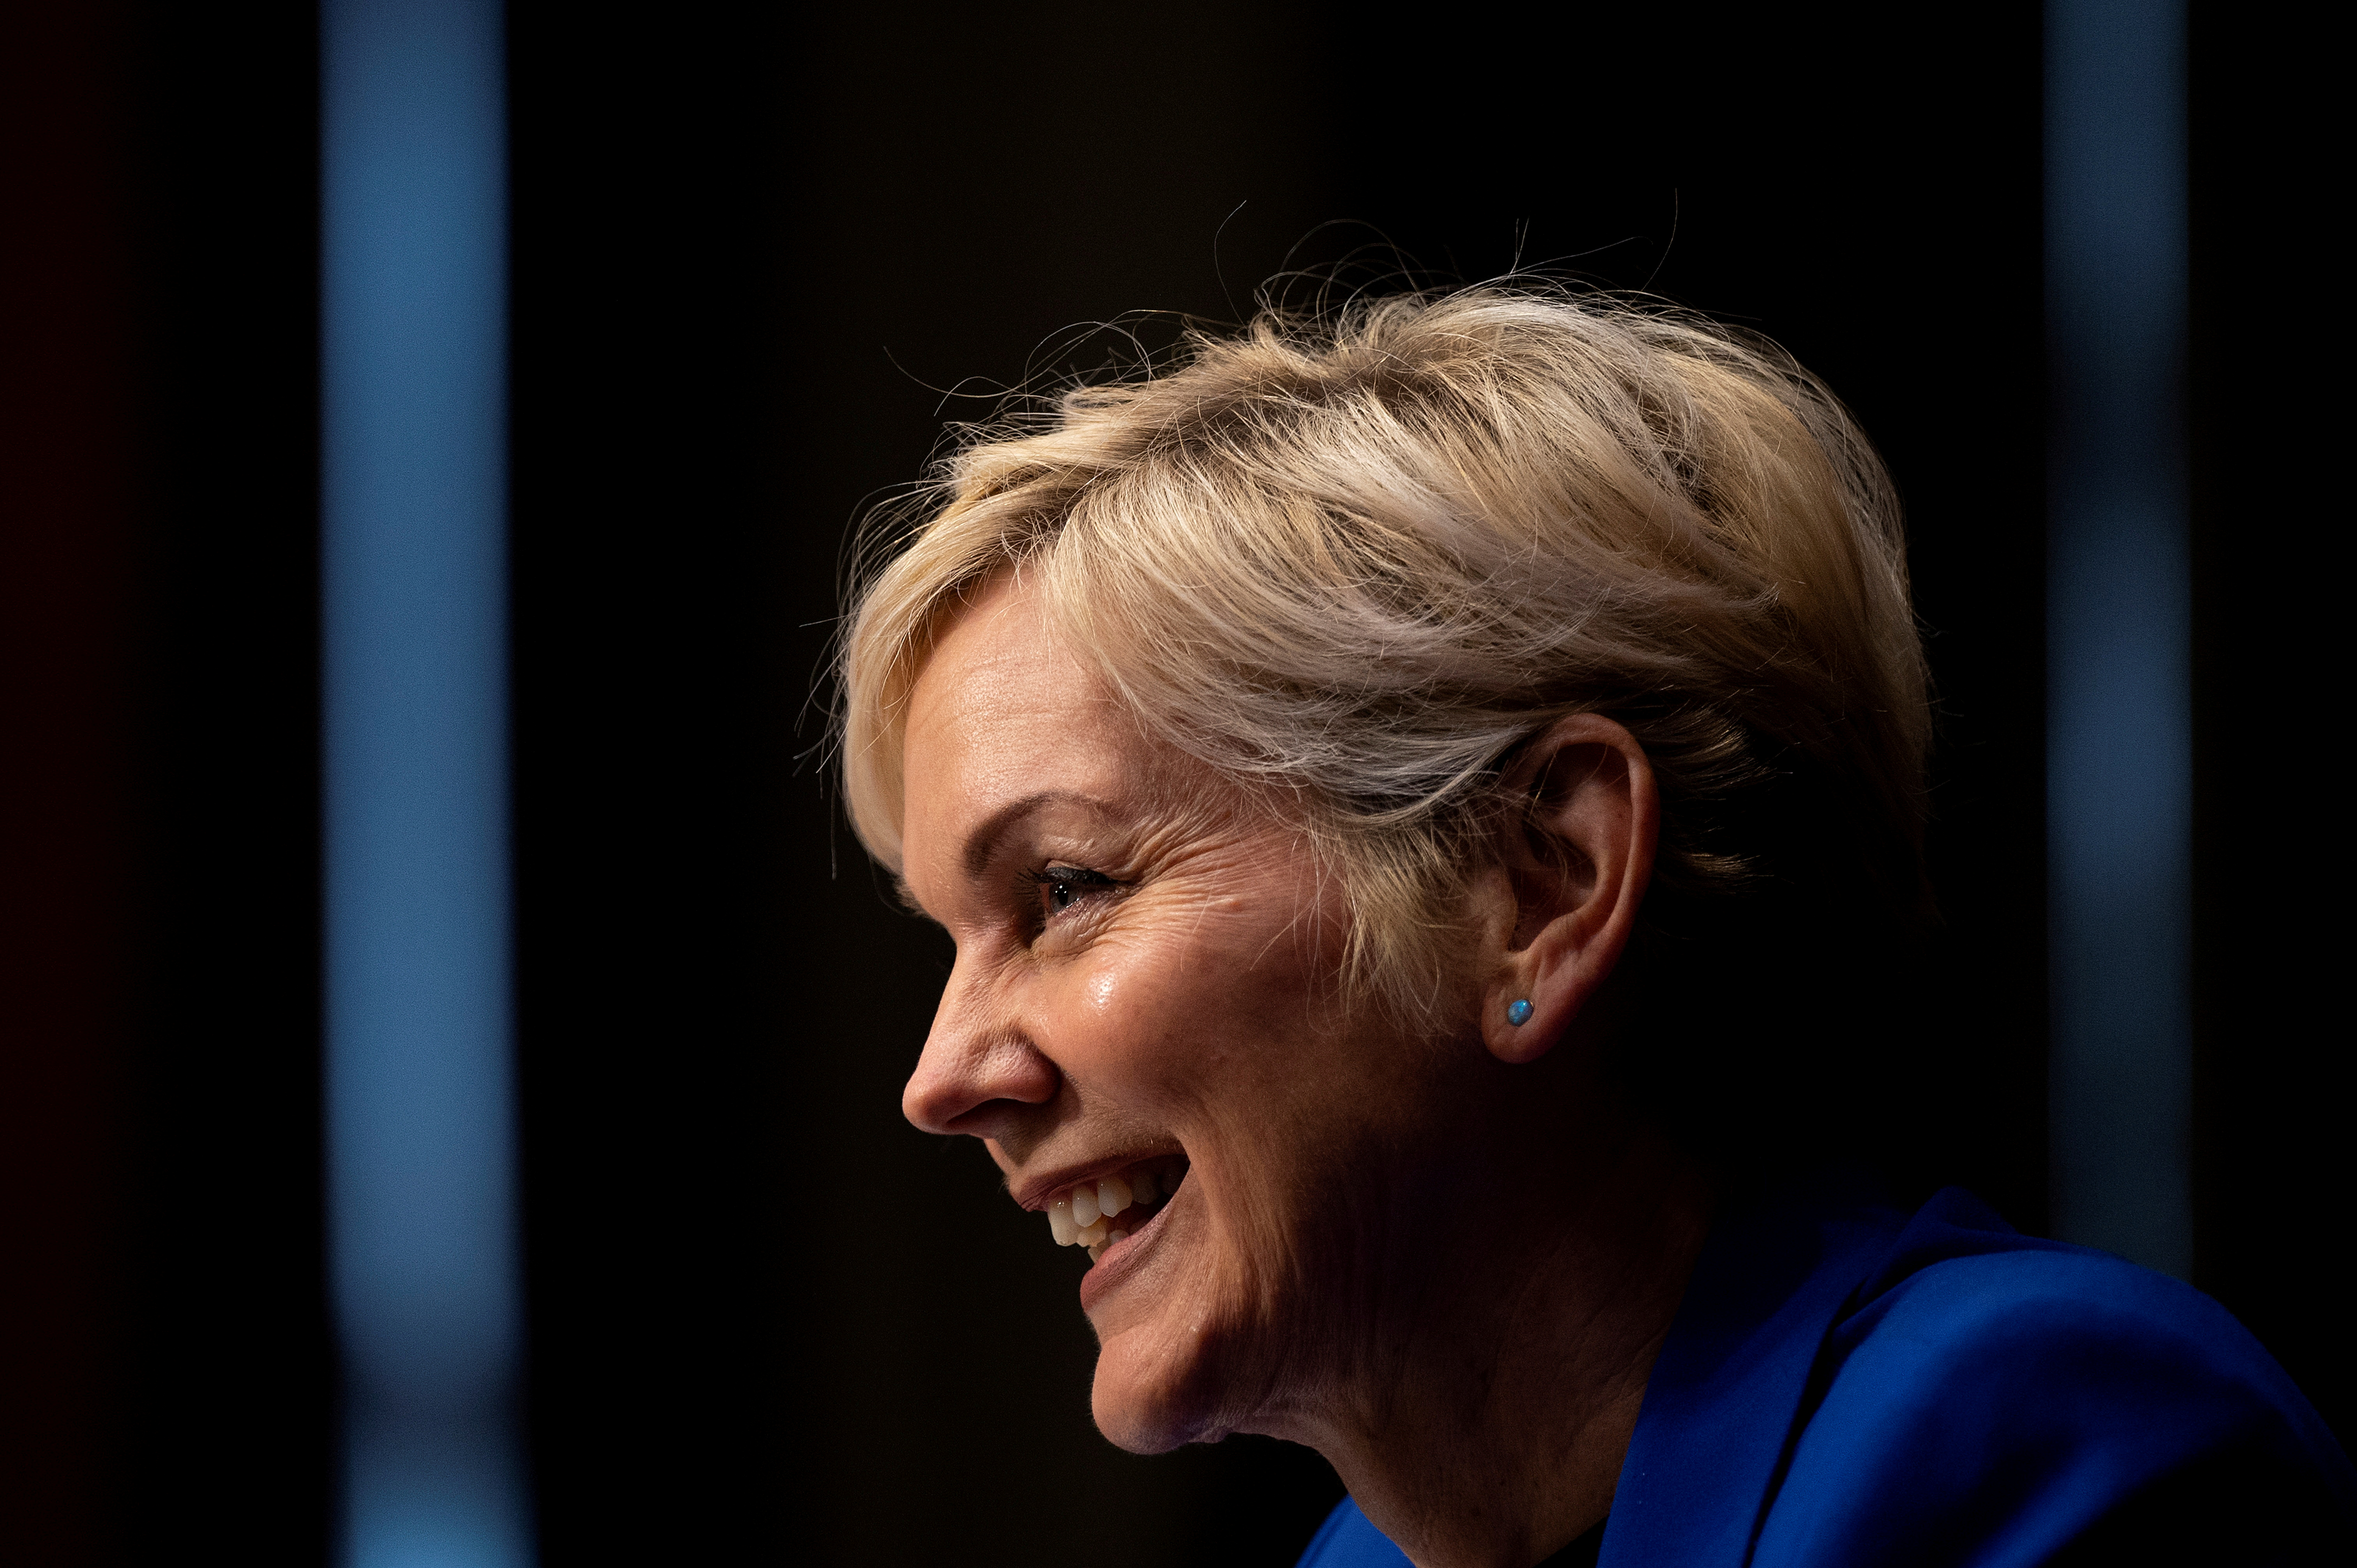 Former Michigan Governor Jennifer Granholm  testifies before the Senate Energy and Natural Resources Committee during a hearing to examine her nomination to be Secretary of Energy, on Capitol Hill in Washington, D.C., U.S., January 27, 2021. Jim Watson/Pool via REUTERS/File Photo